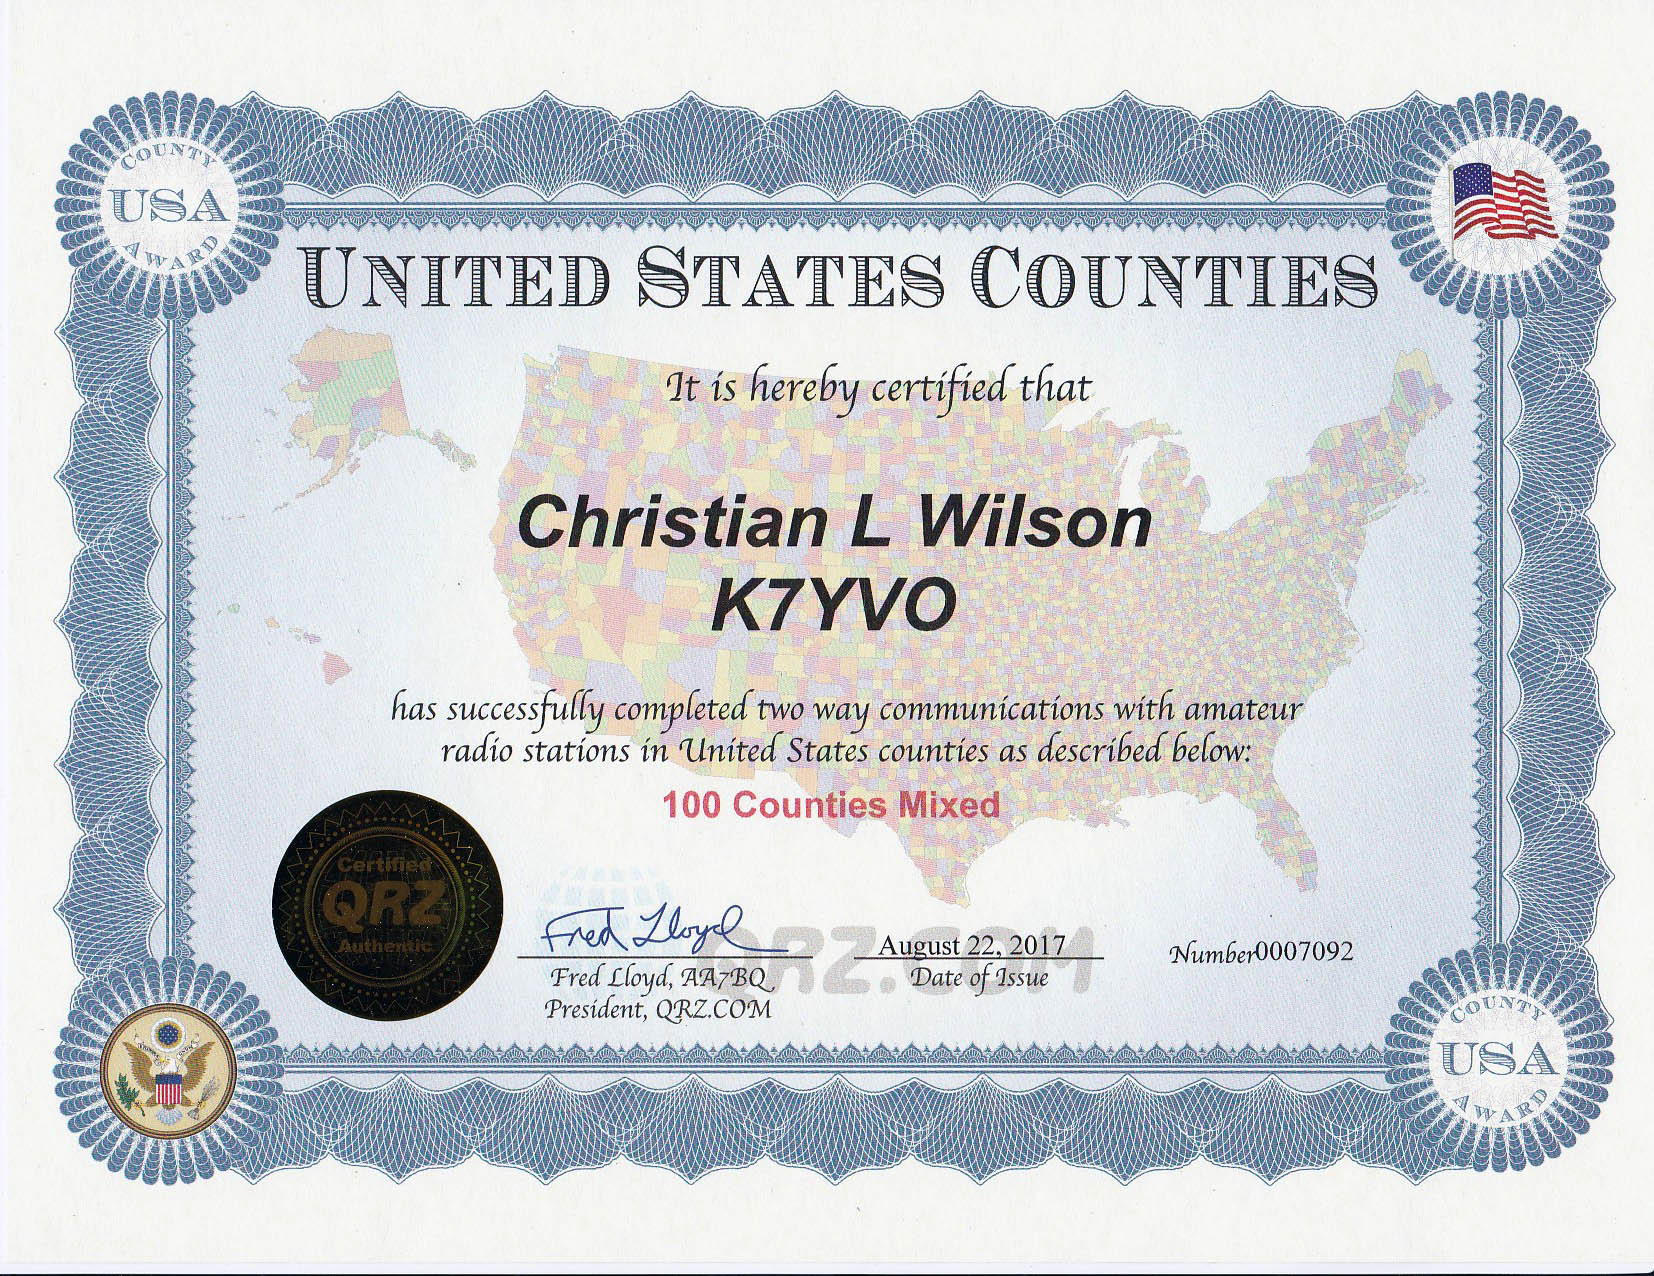 United States Counties Award